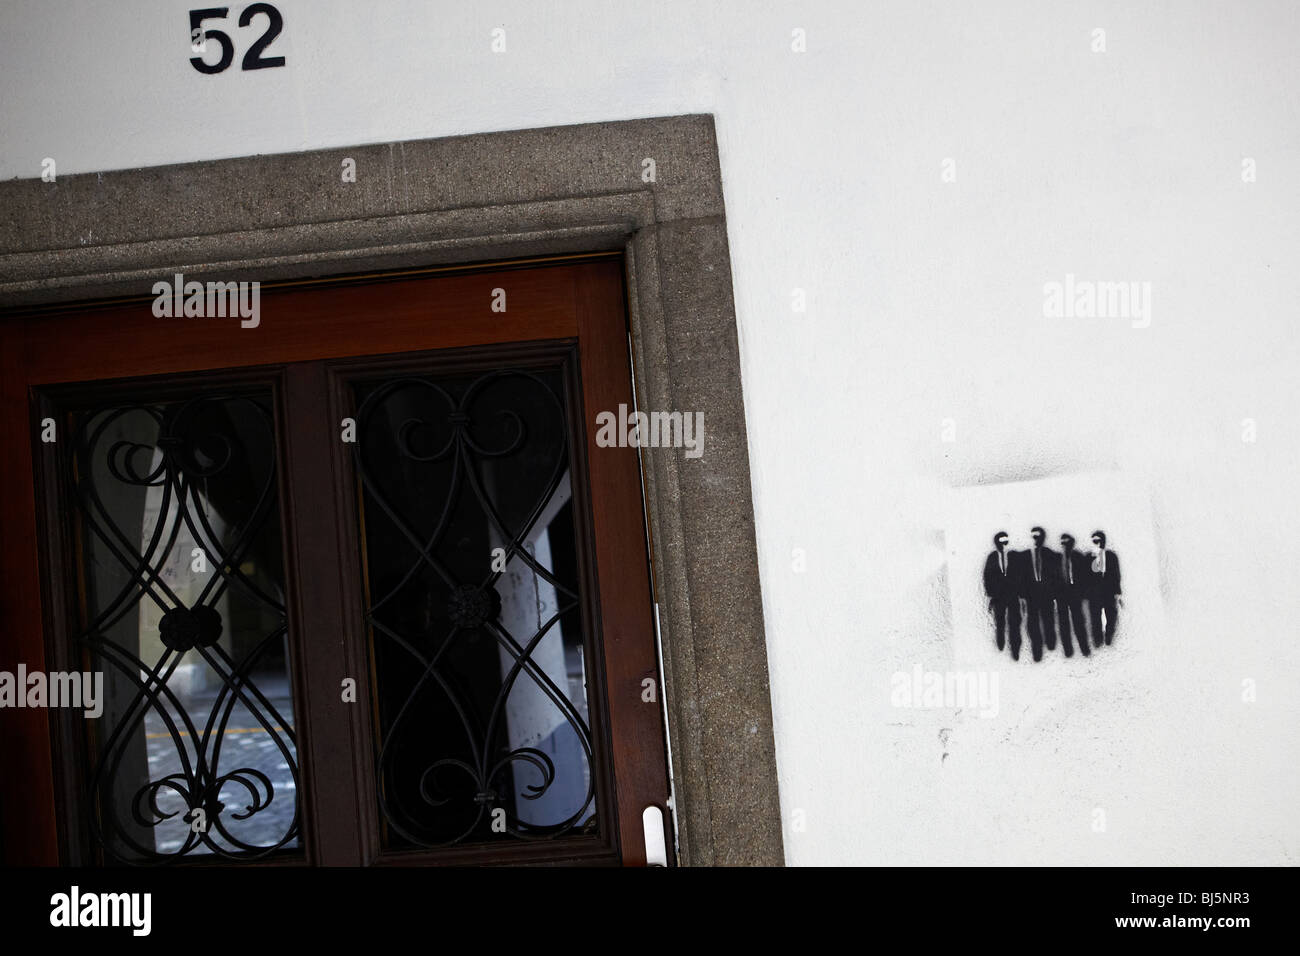 Reservoir Dogs stencil graffiti in Bern, Switzerland - Stock Image